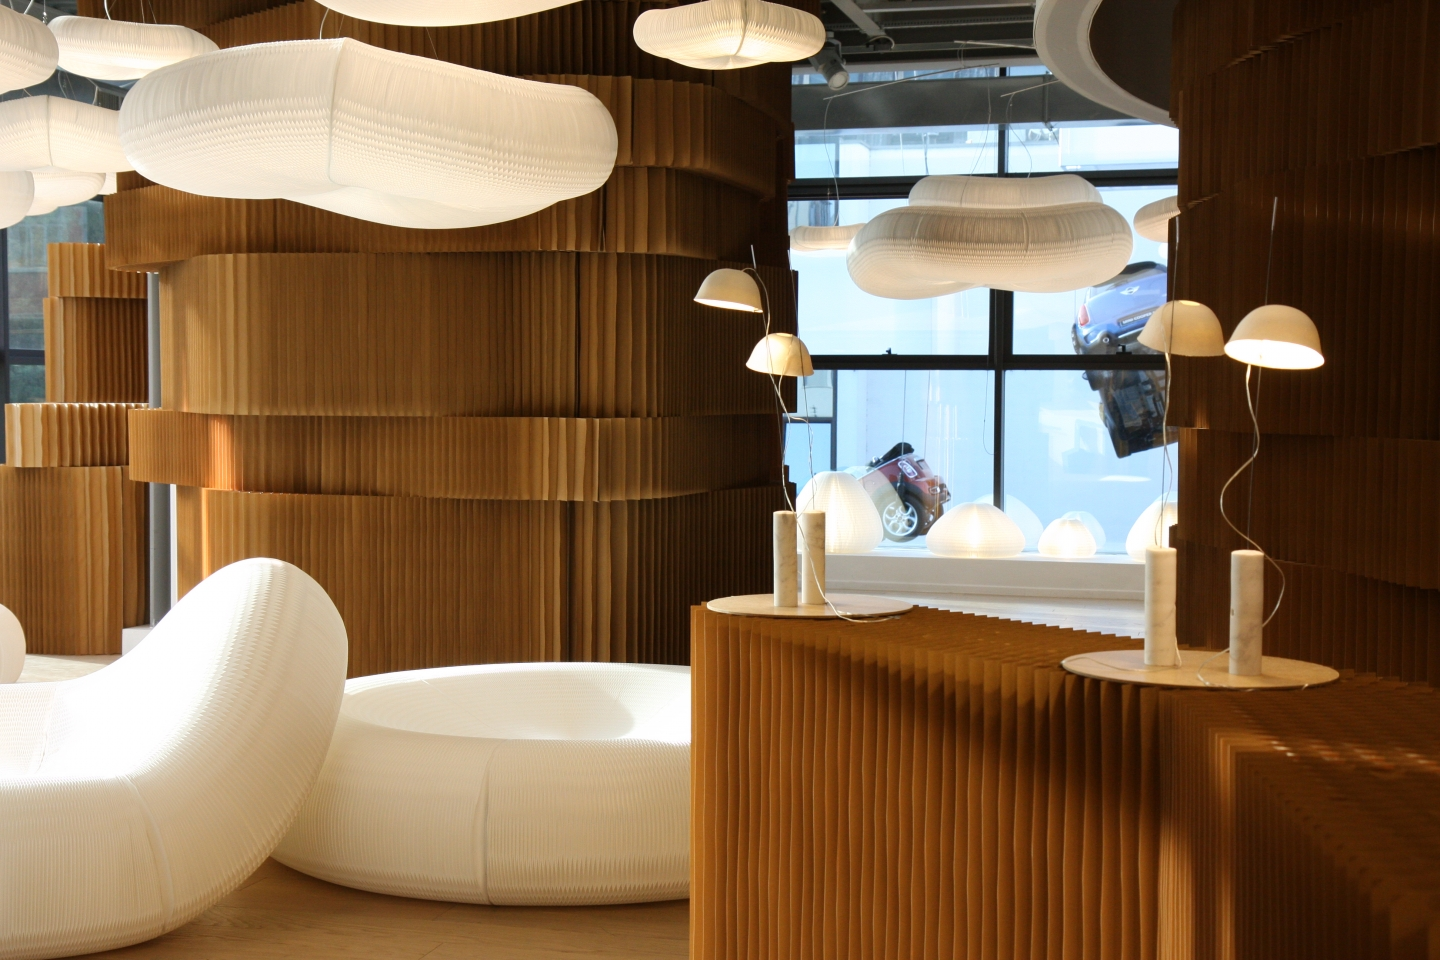 paper room divider and funiture - molo's booth at Superstudio Piu showcased textile loungers, cloud softlight pendants and brown paper softblocks.